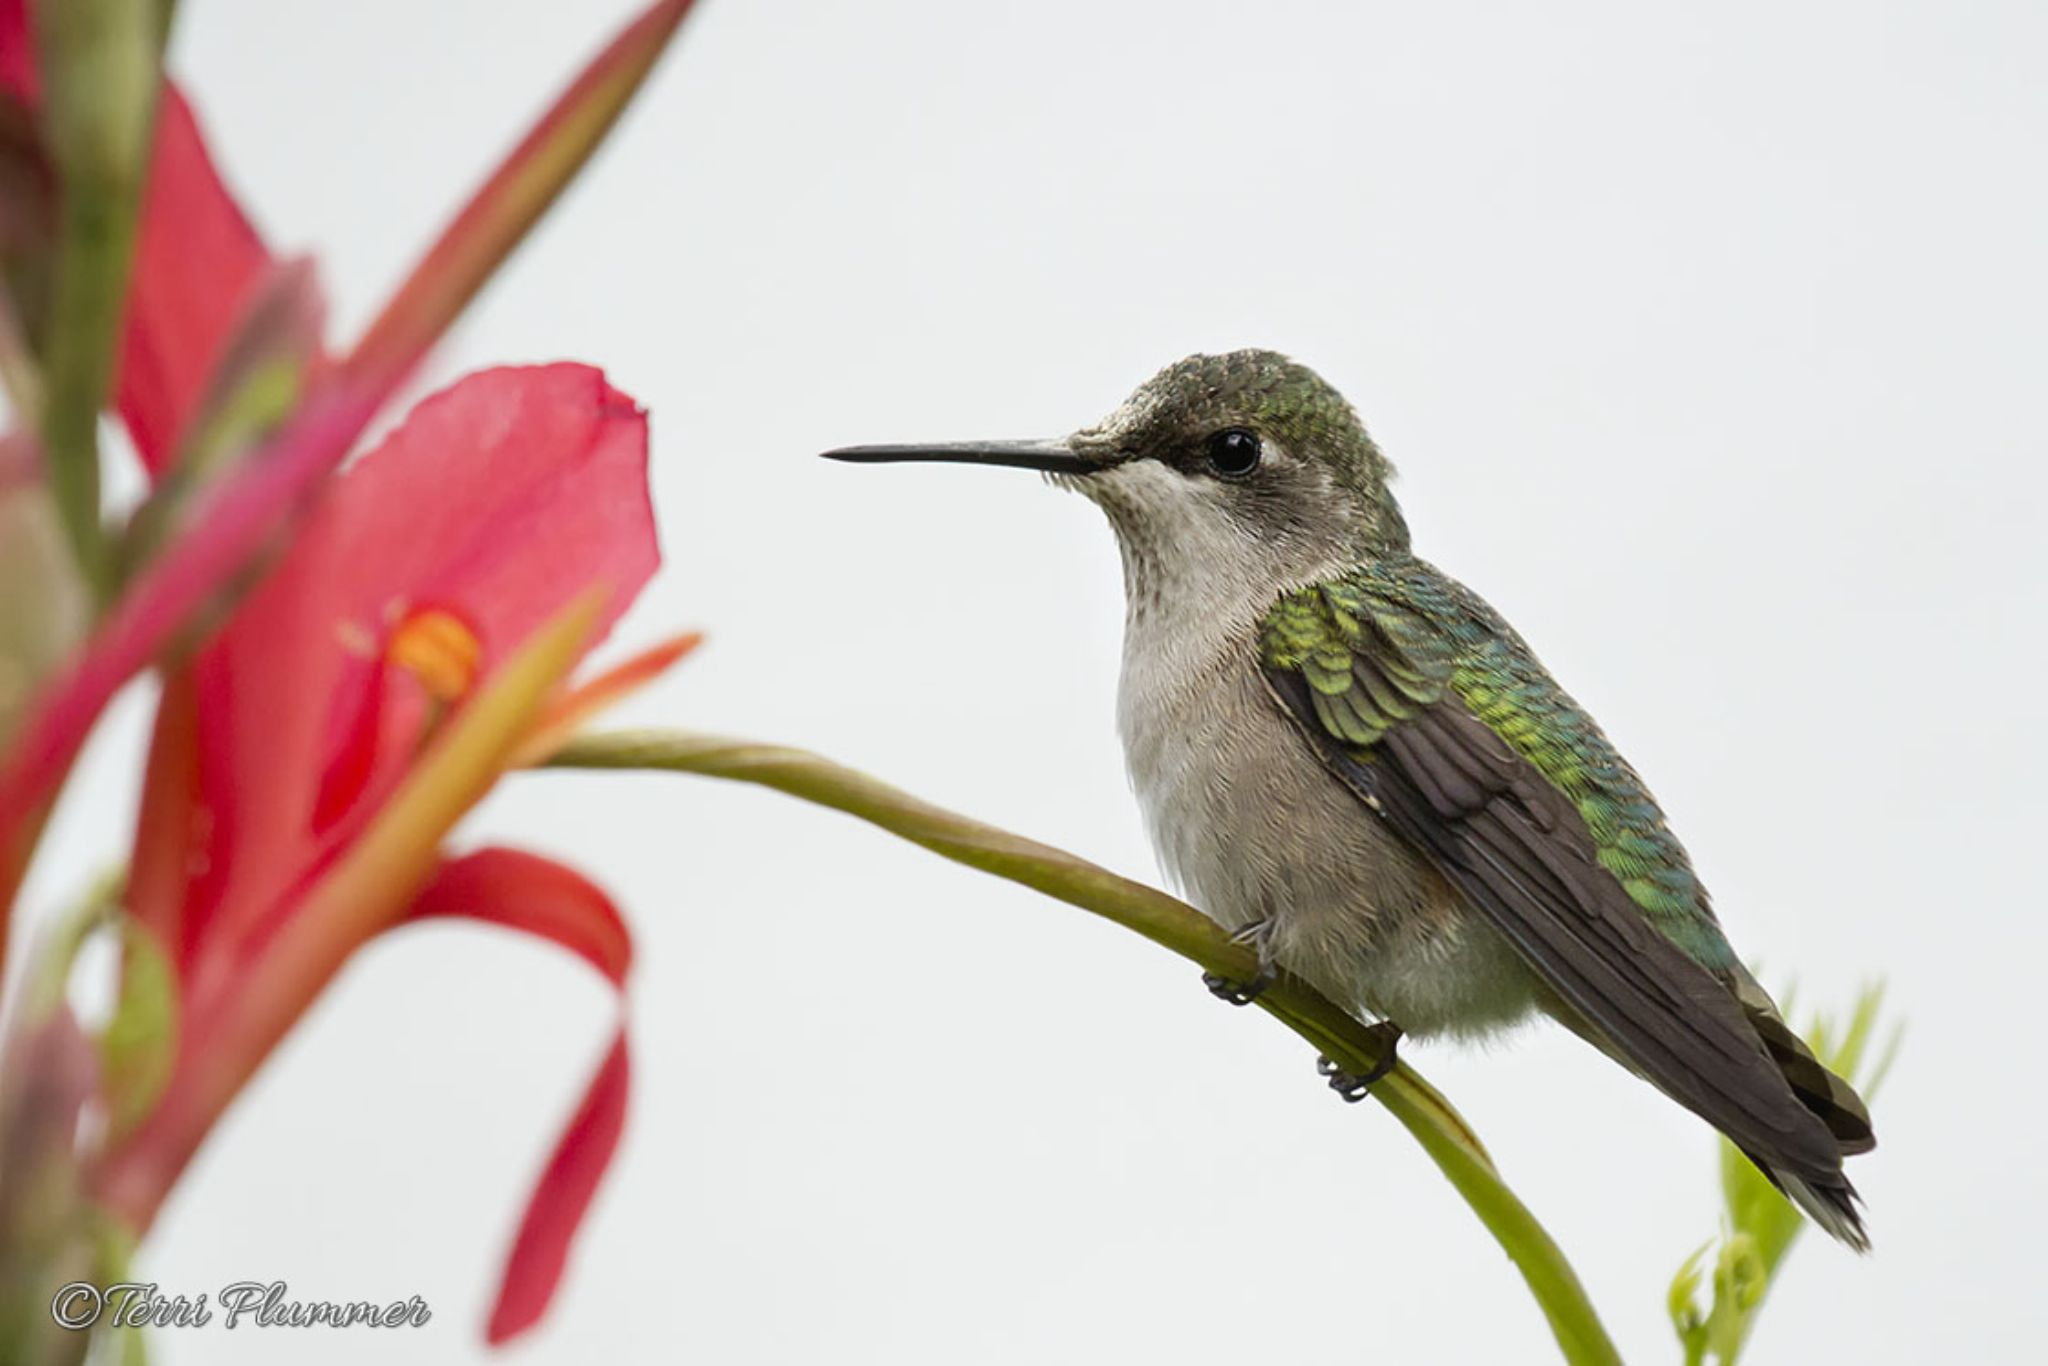 Ruby throated hummingbird by Terri Plummer